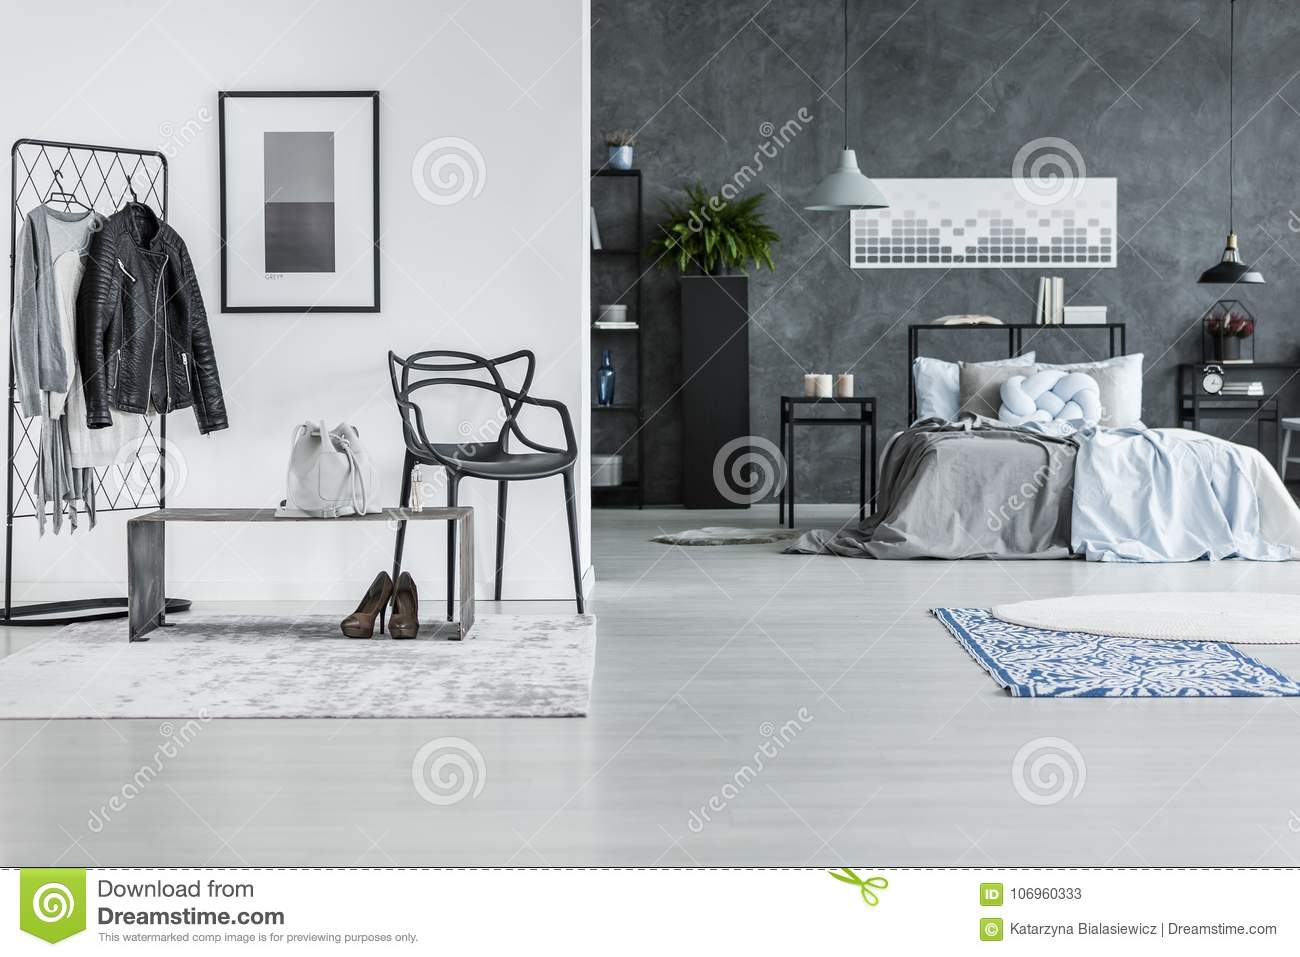 Attractive Black Chair Next To Bench In Anteroom In Spacious Grey Bedroom Interior  With Rugs, Lamps And Poster On Dark Wall Above Bed